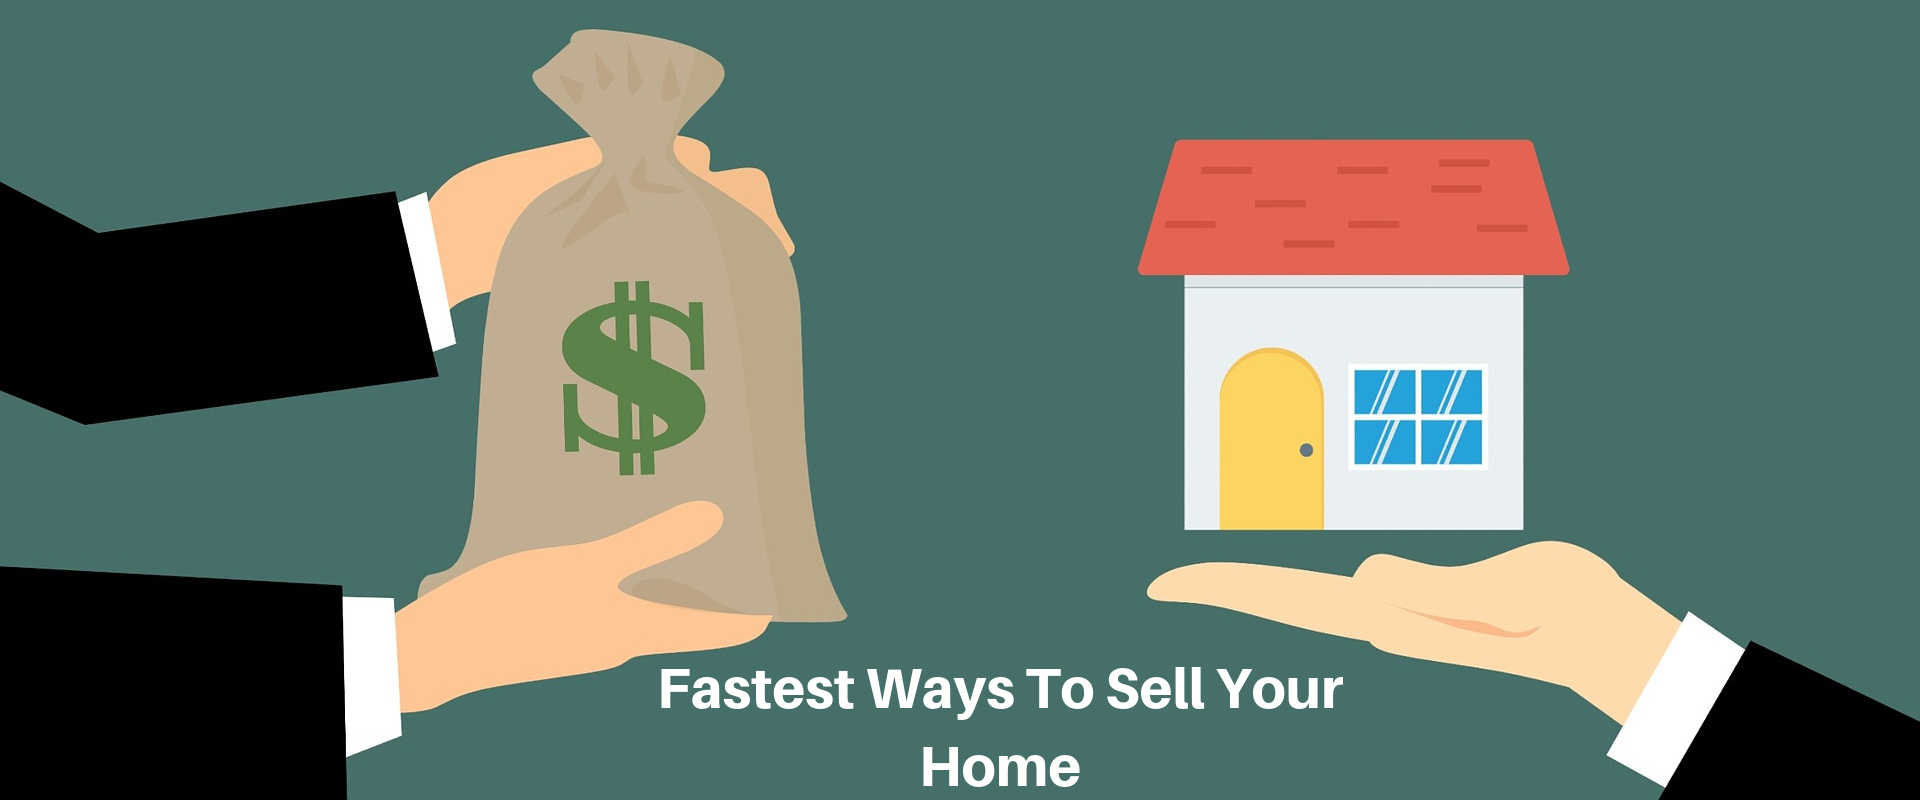 Fastest Ways To Sell Your Home